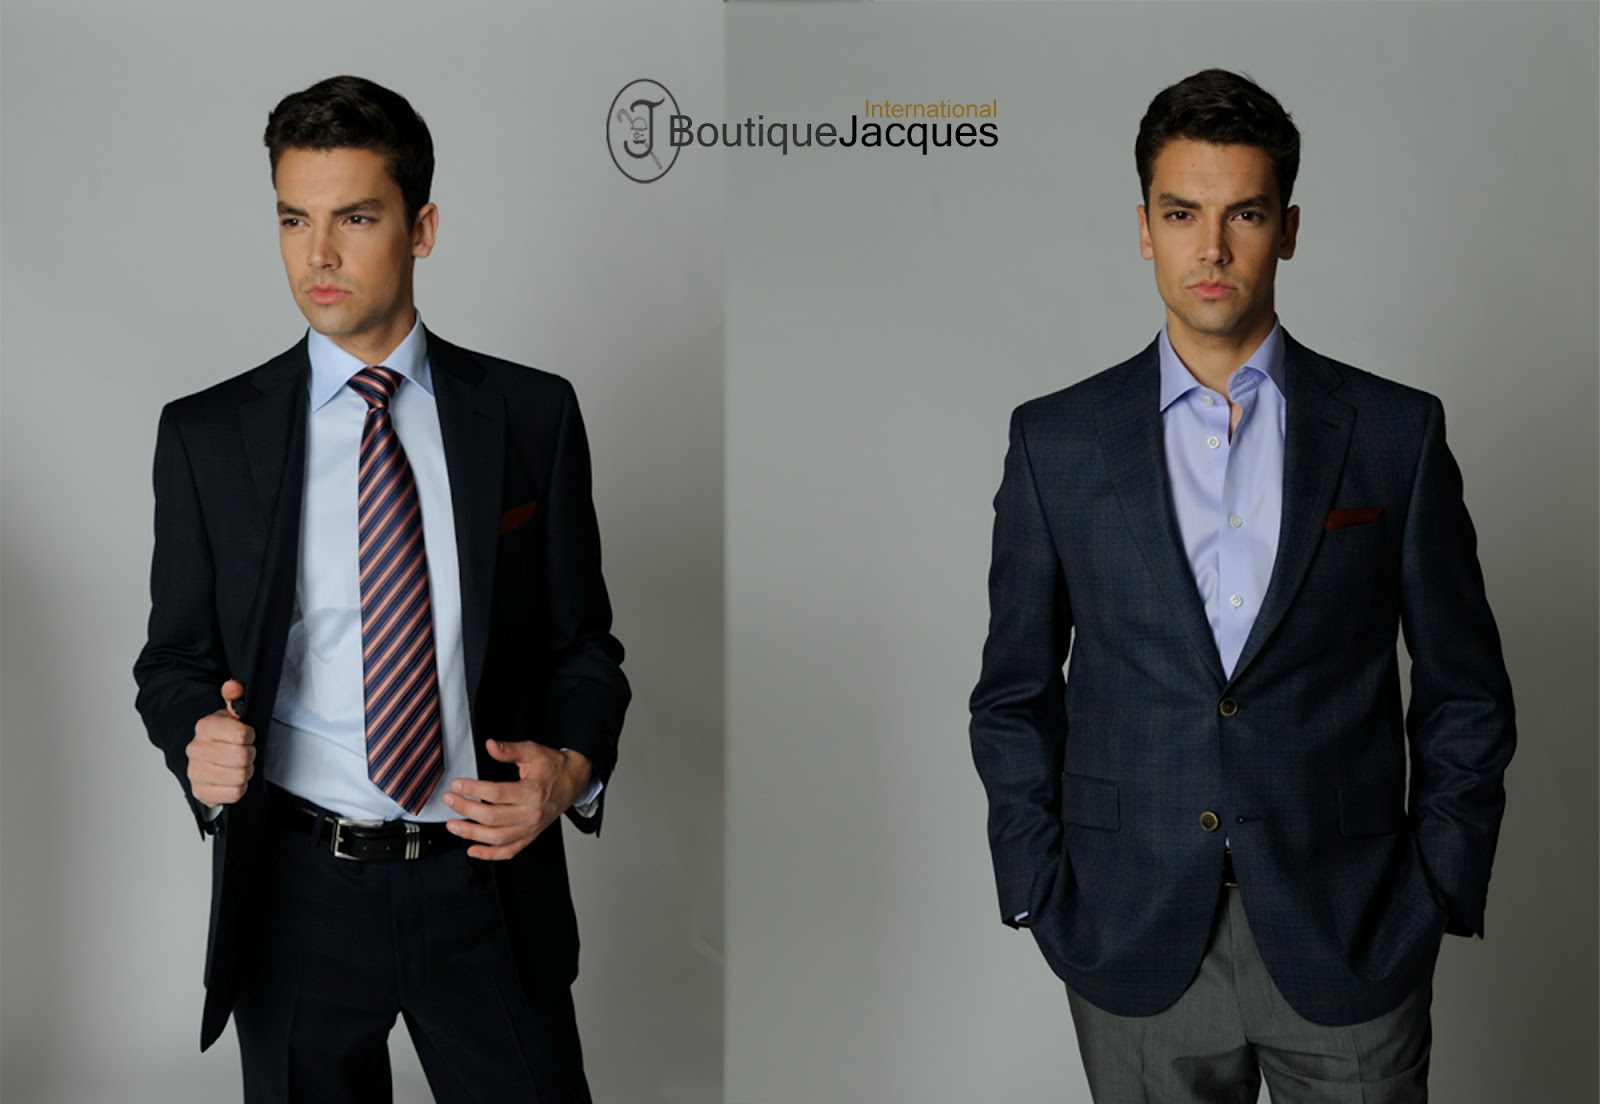 Dress code for smart casual smart casual dress code for men pictures - Business Classic To Smart Casual